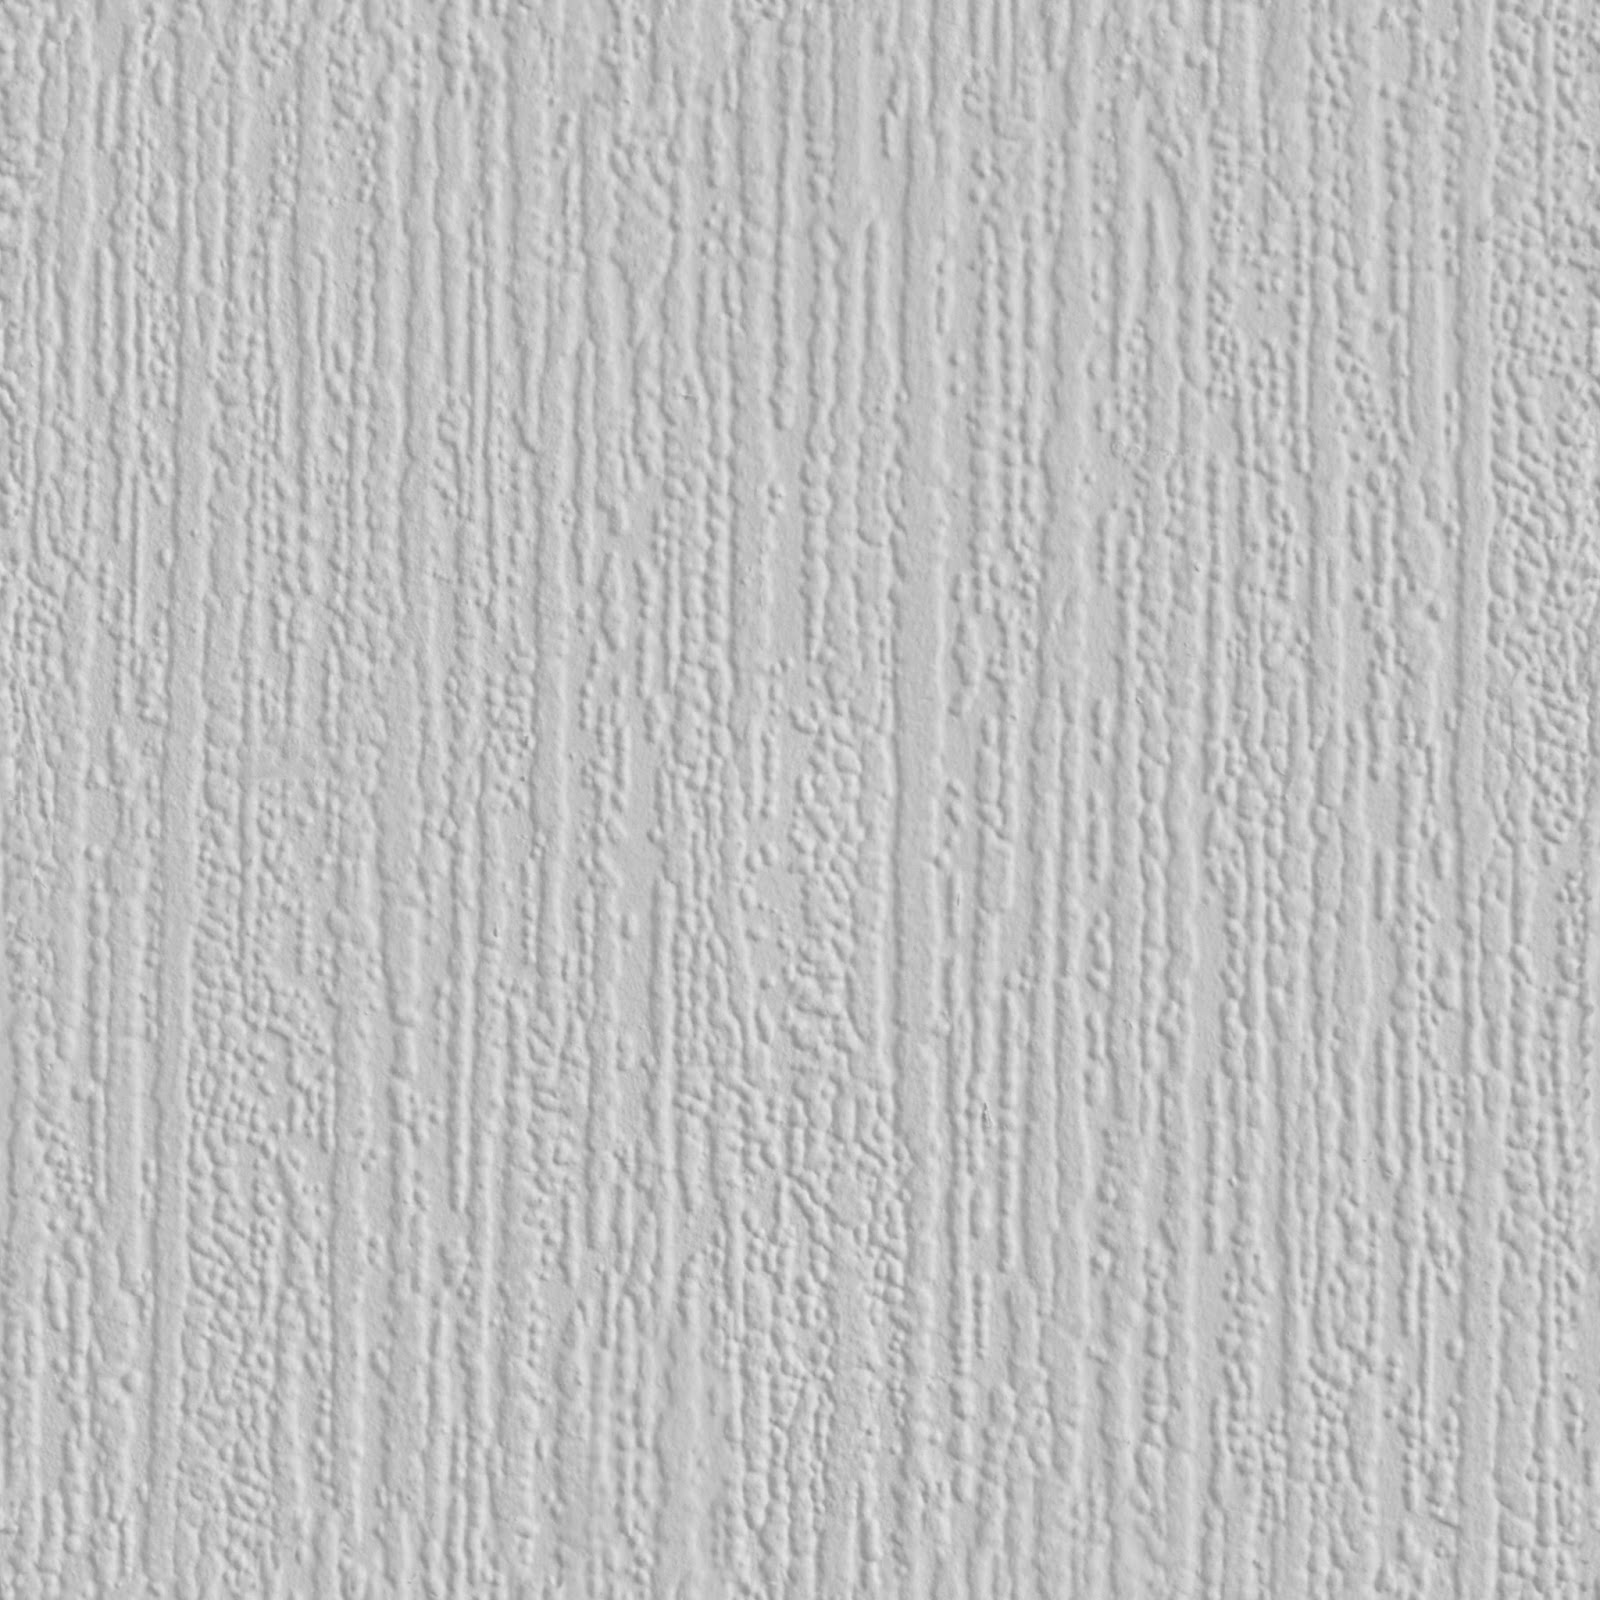 (STUCCO 3) white stucco plaster wall paper texture